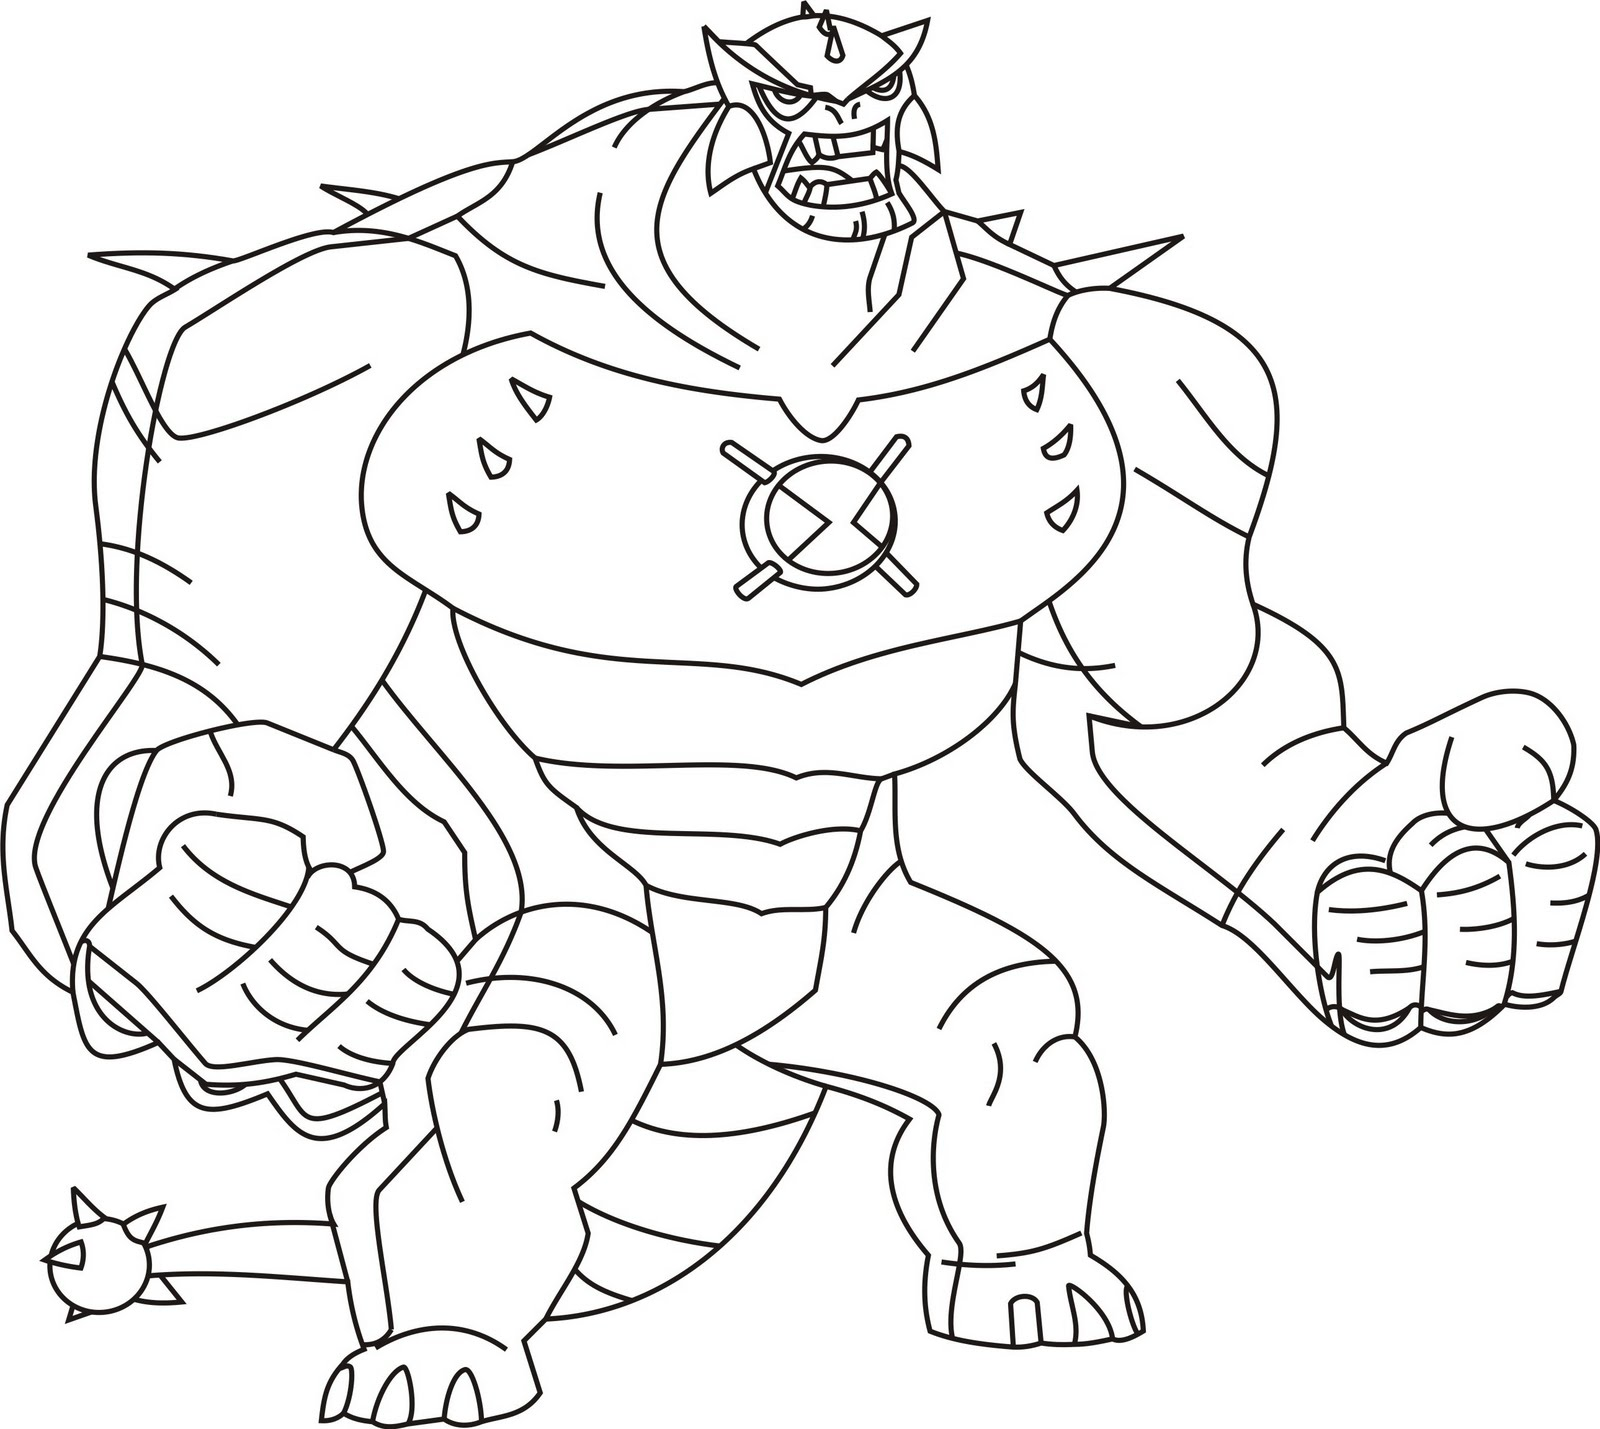 ben 10 coloring pages - photo#1